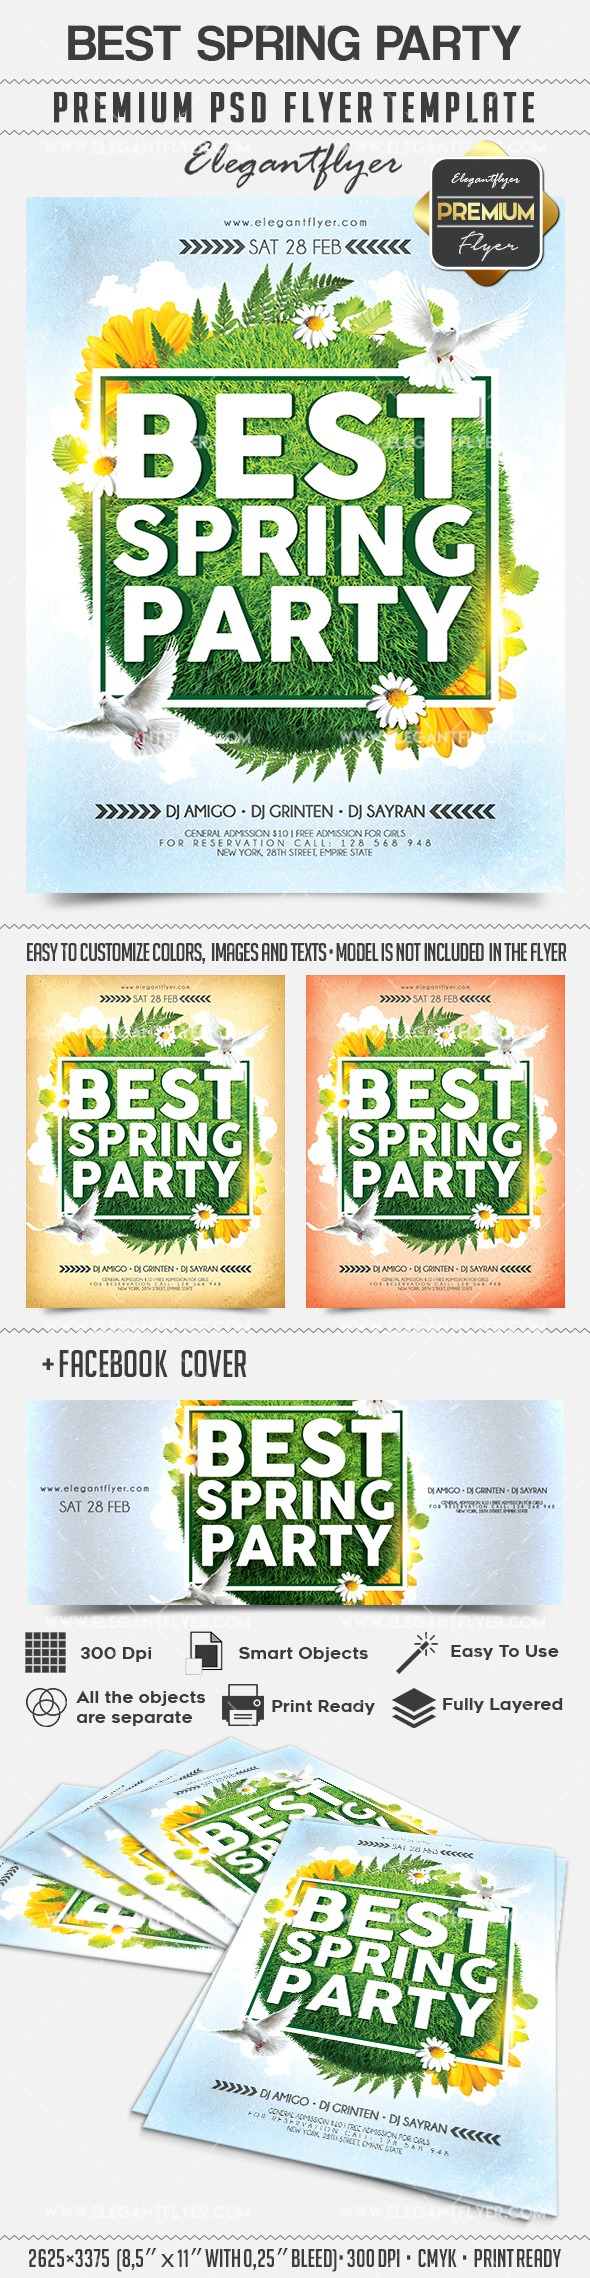 Best Spring Party Flyer PSD Template Facebook Cover by – Spring Party Flyer